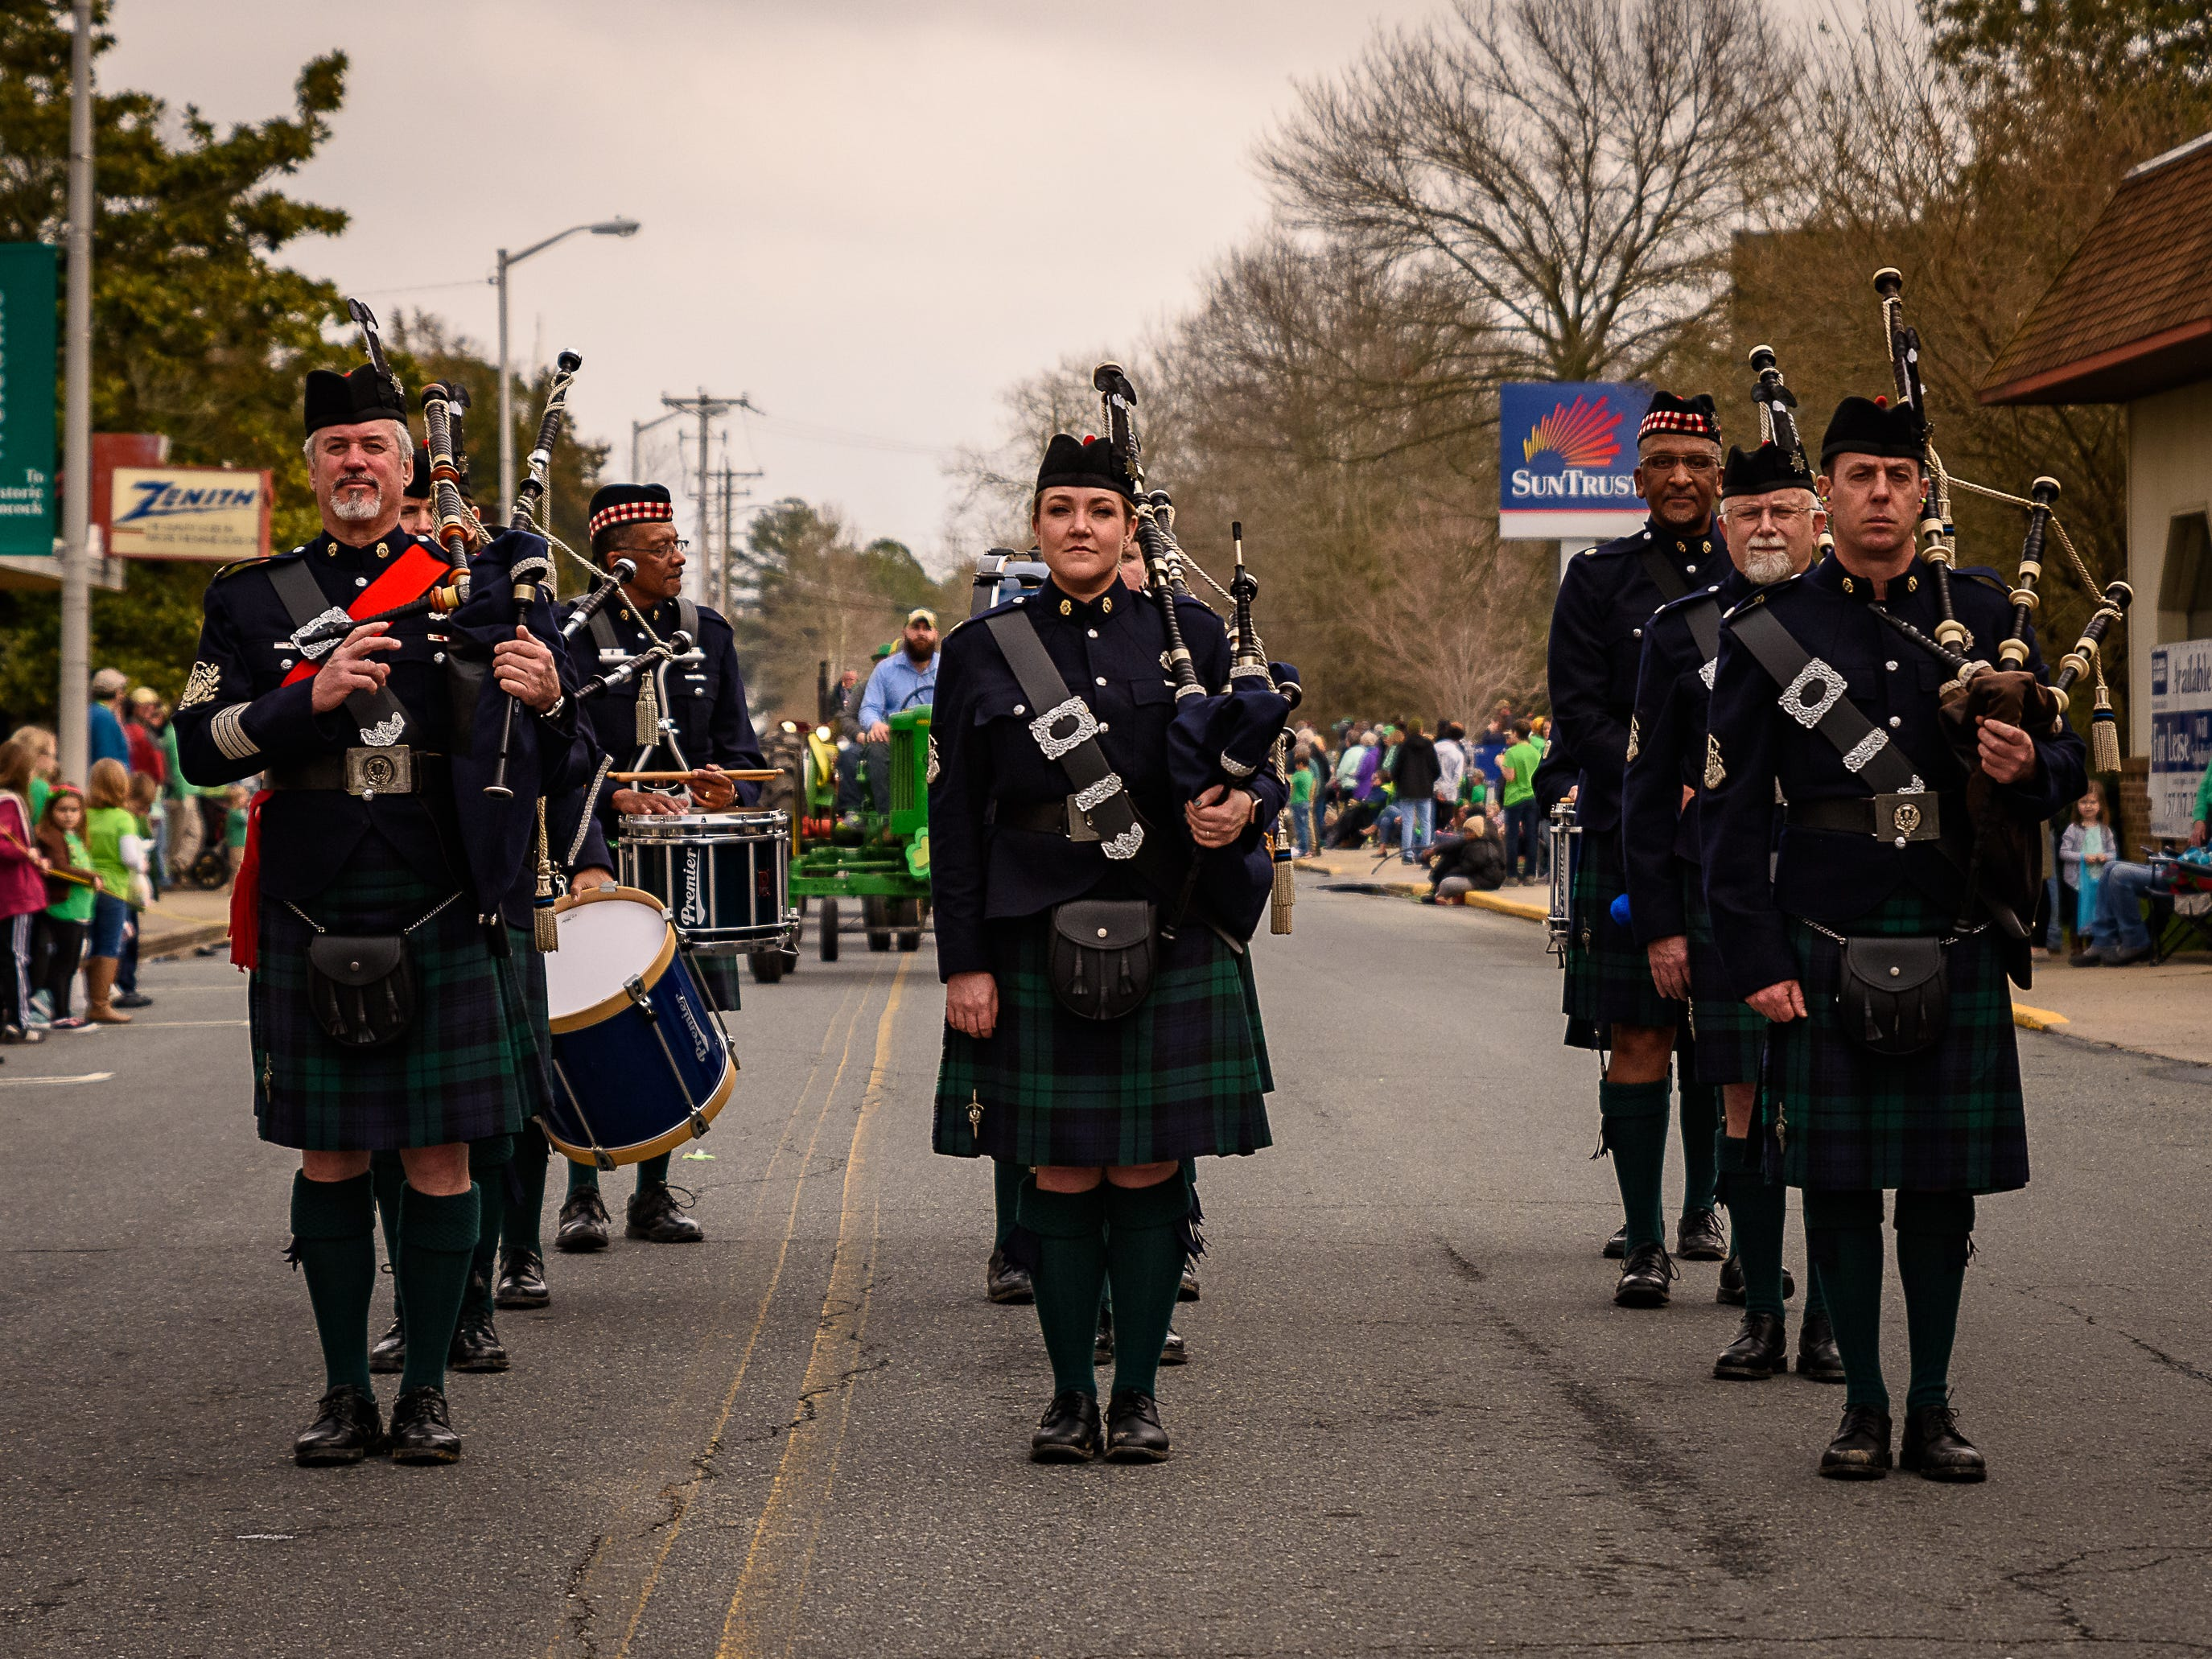 The Newport News Police Department Pipe and Drum Corp perform in the Onancock parade.